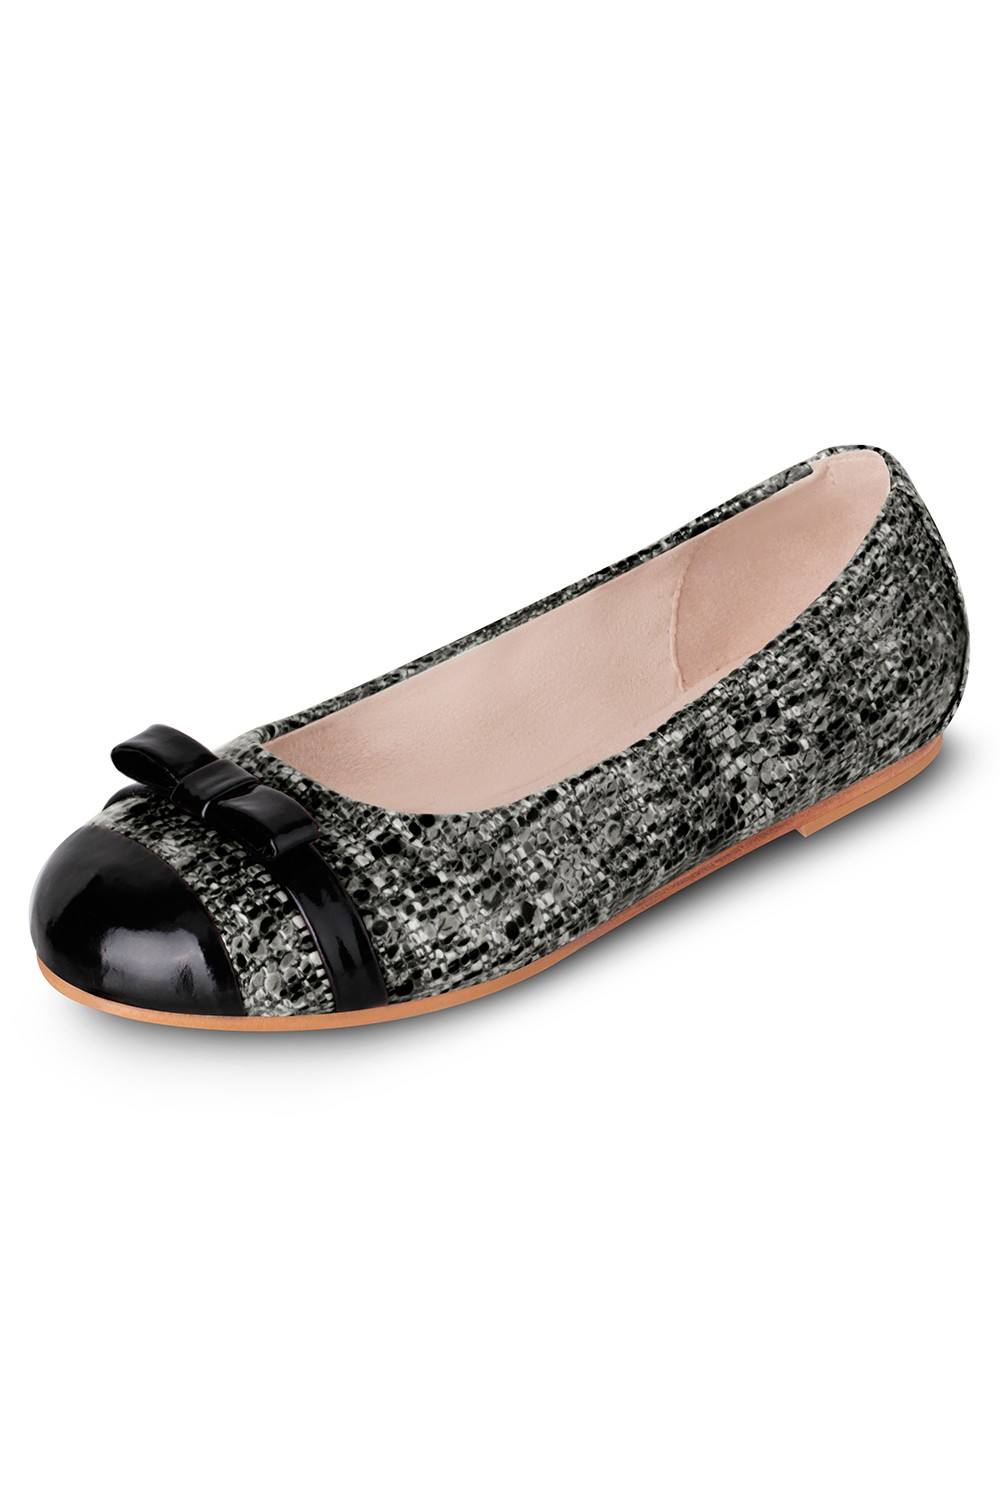 Clarisse - Girls Girls Fashion Shoes